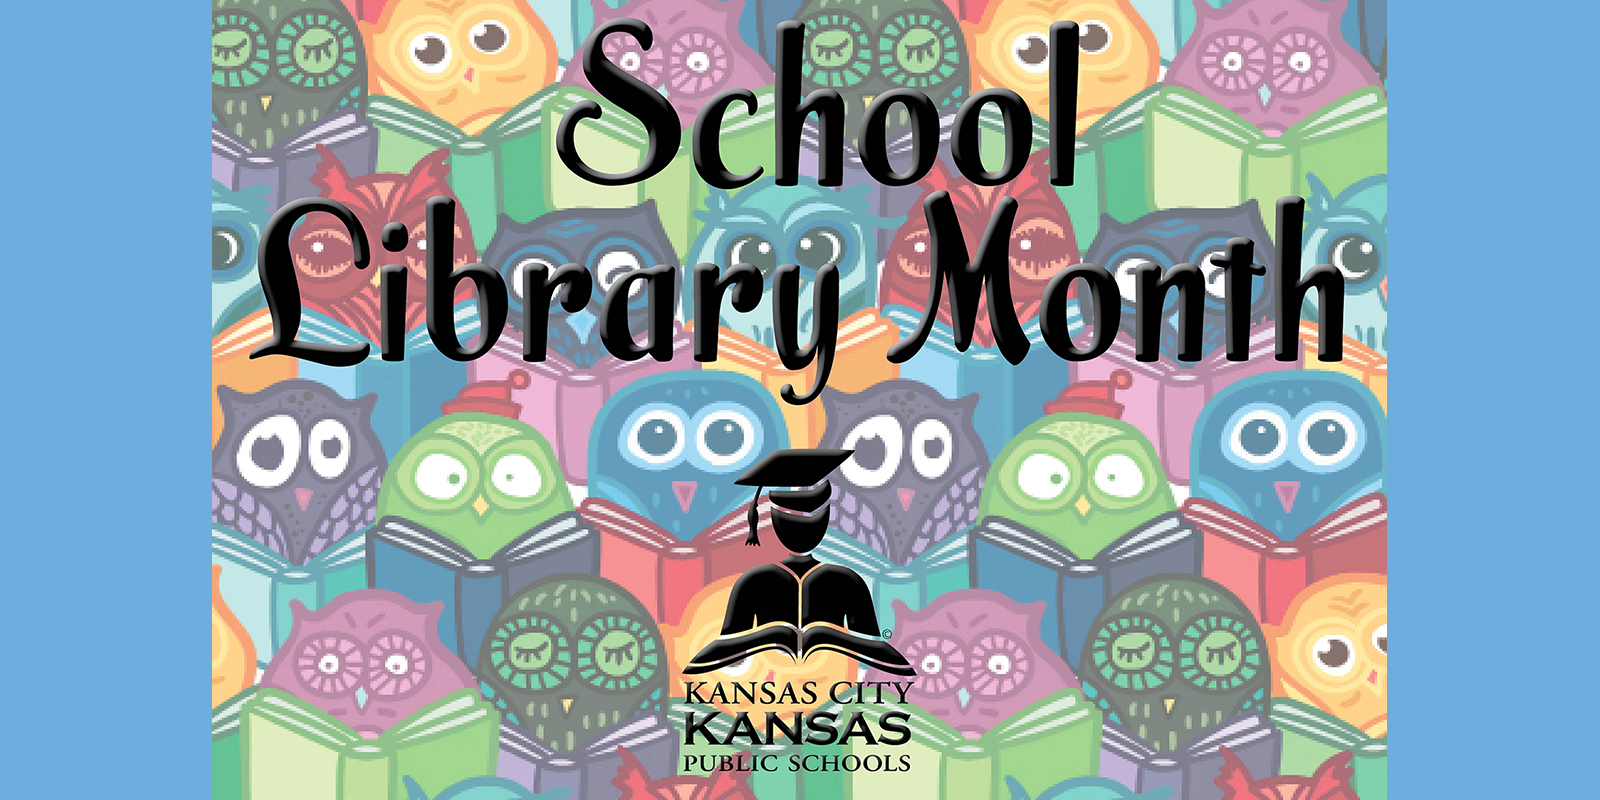 National School Library Month